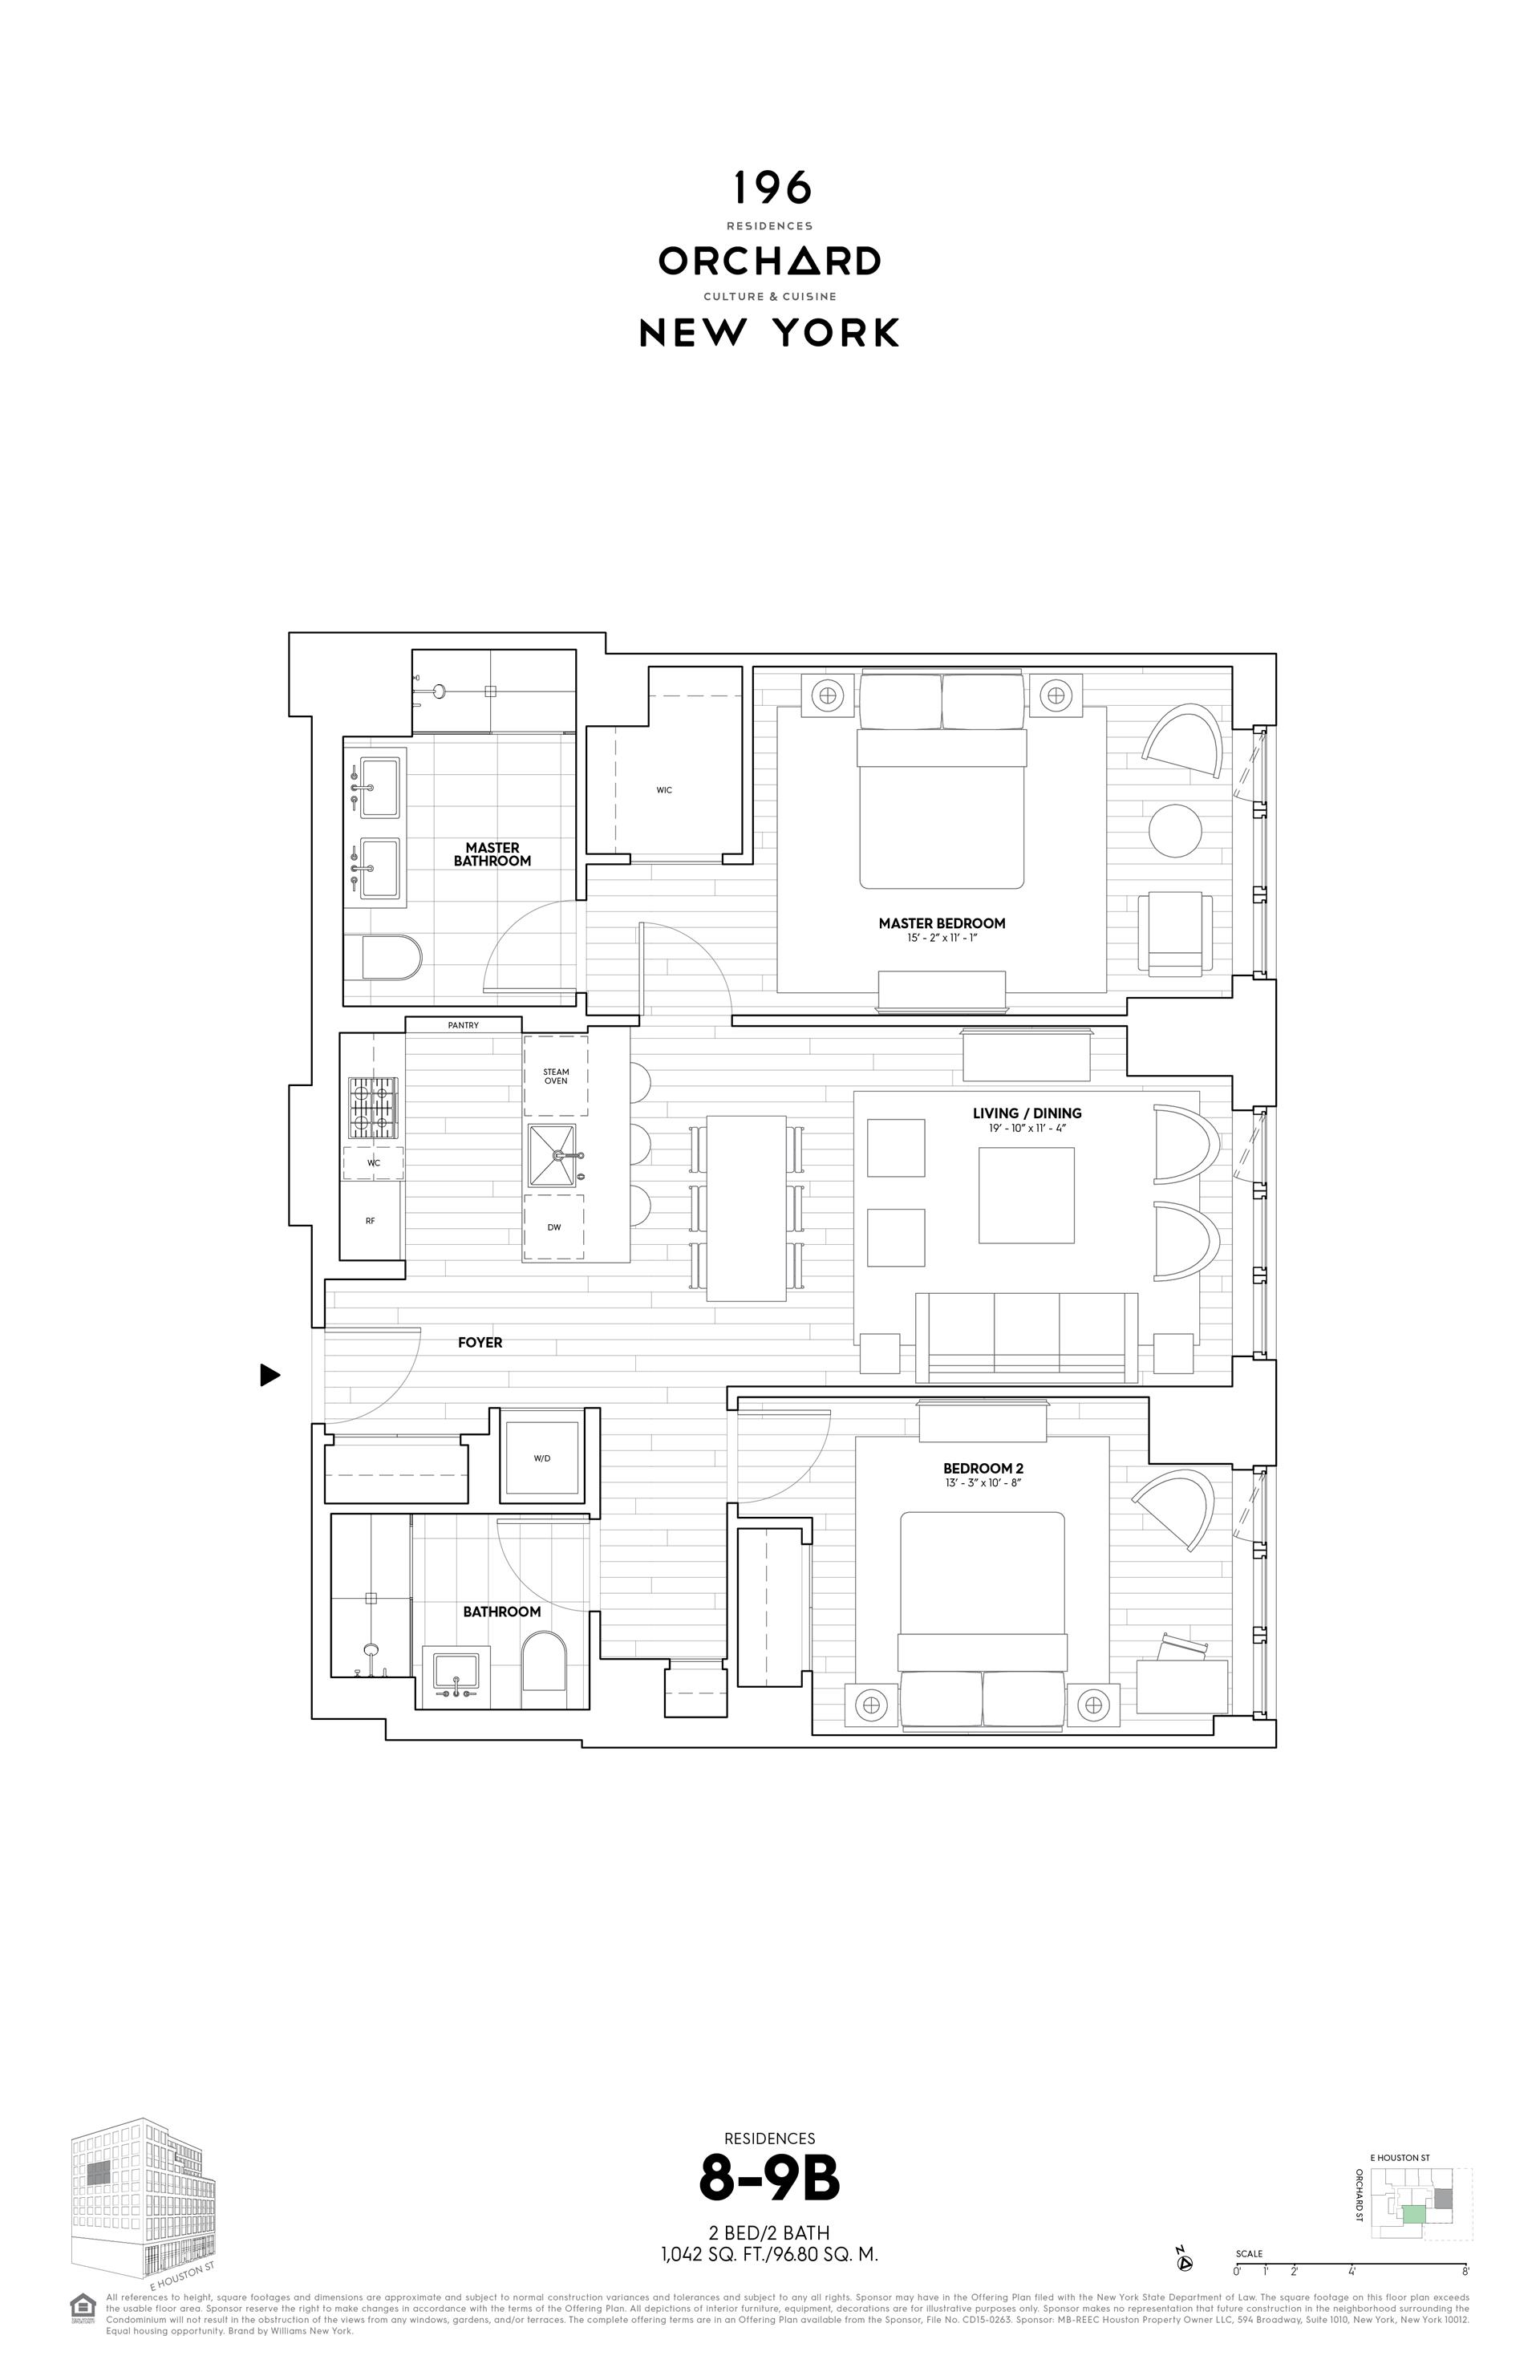 Floor plan of 196 Orchard Street, 9B - Lower East Side, New York